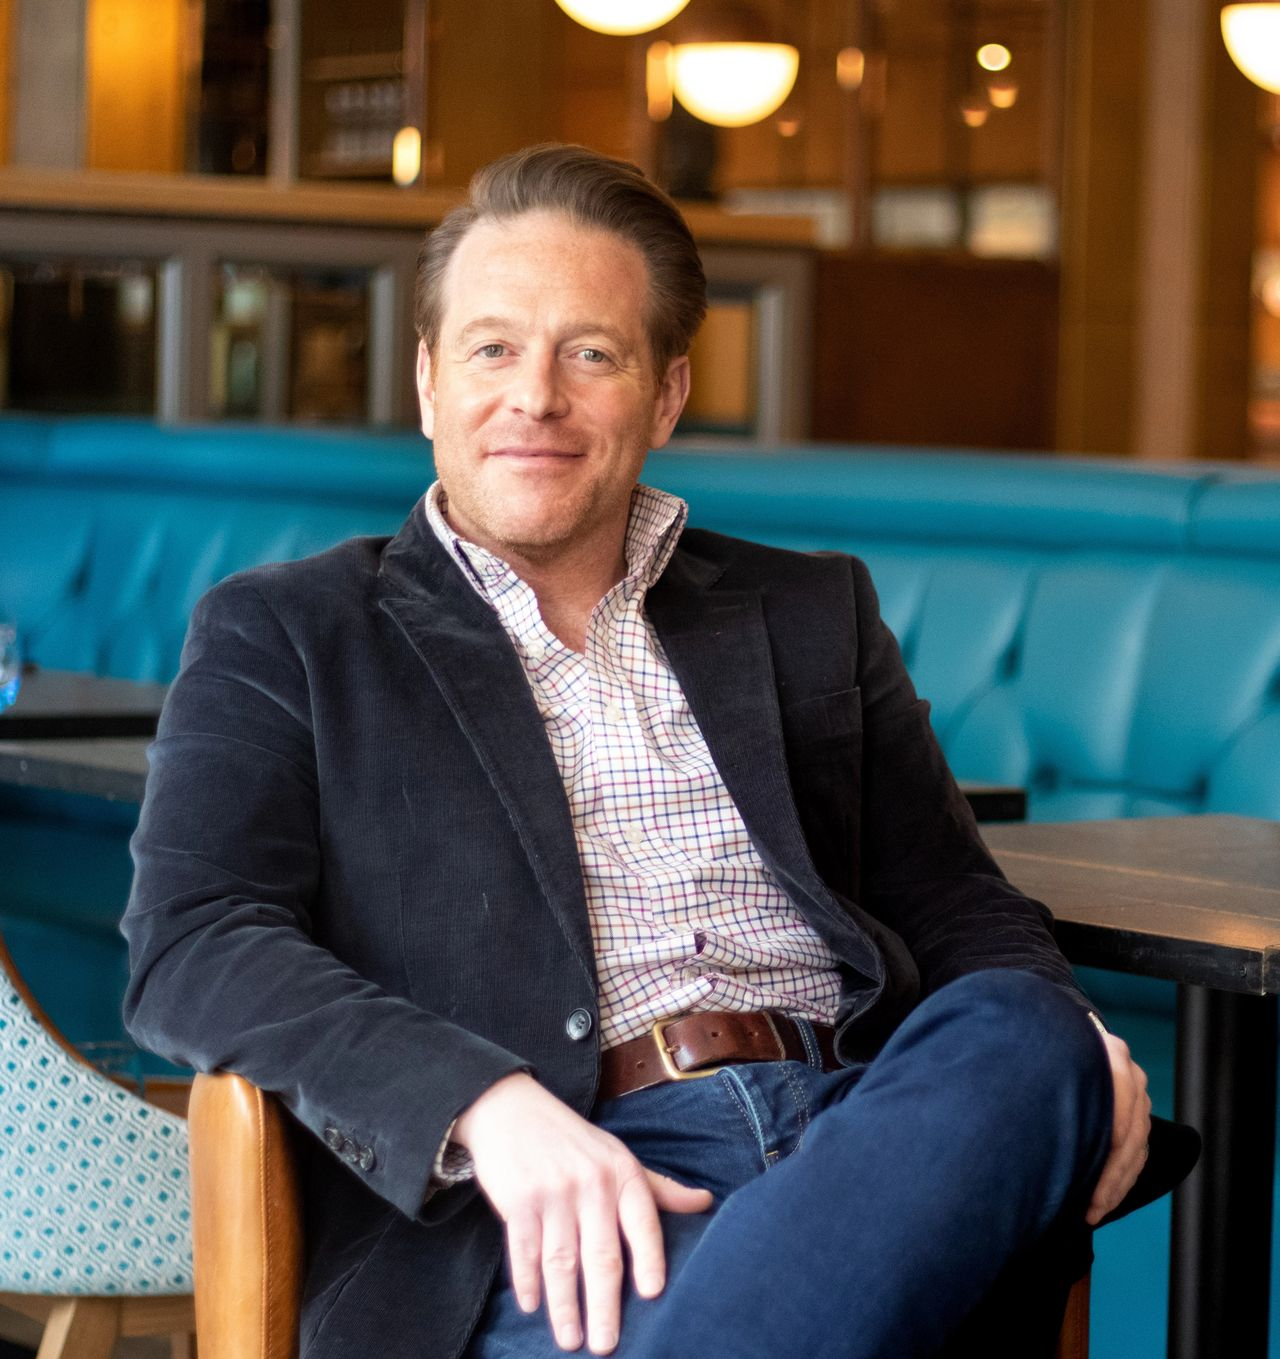 Toby Lewis, CEO of Live Group